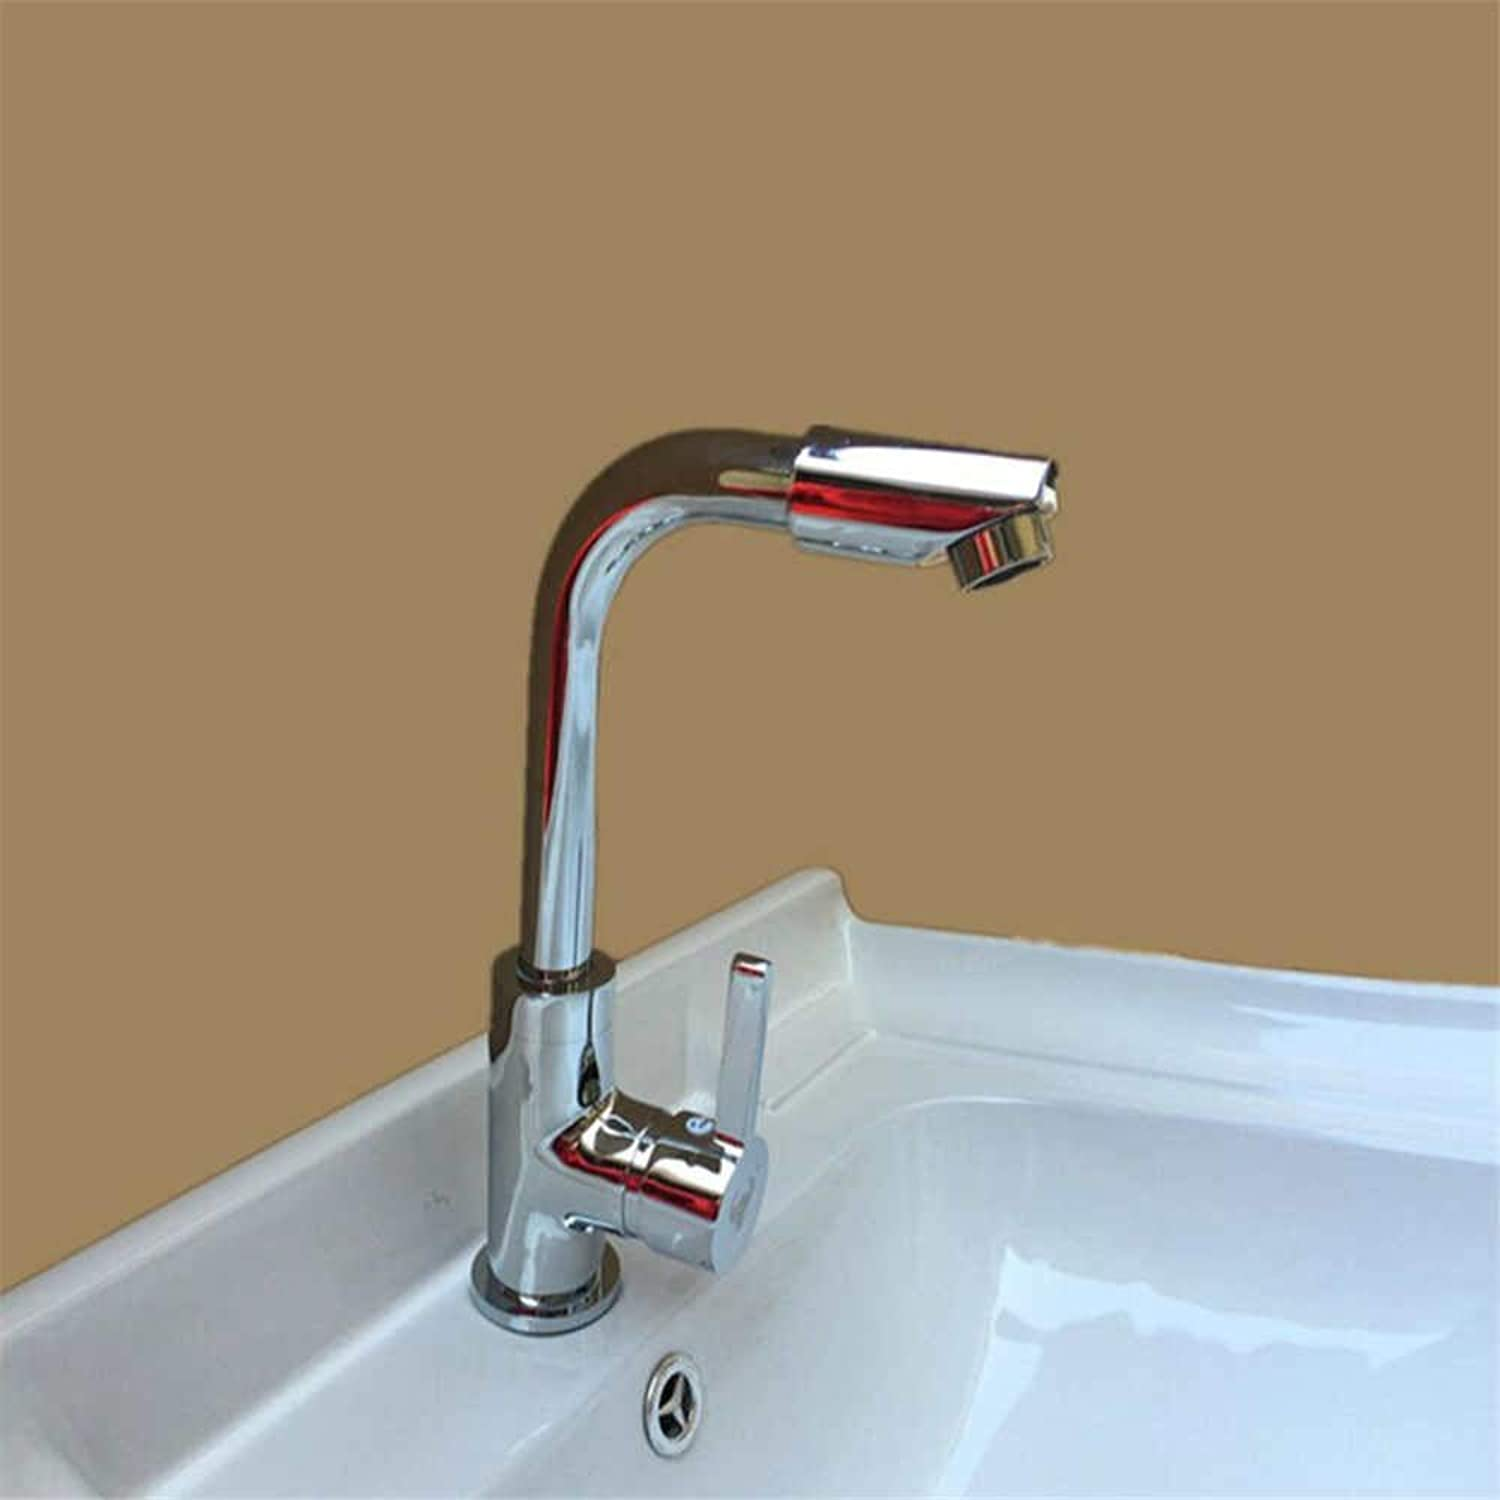 Basin Mixer Tap 360 Degree redating Faucet Stainless Steel Faucet Double Hole Basin Faucet